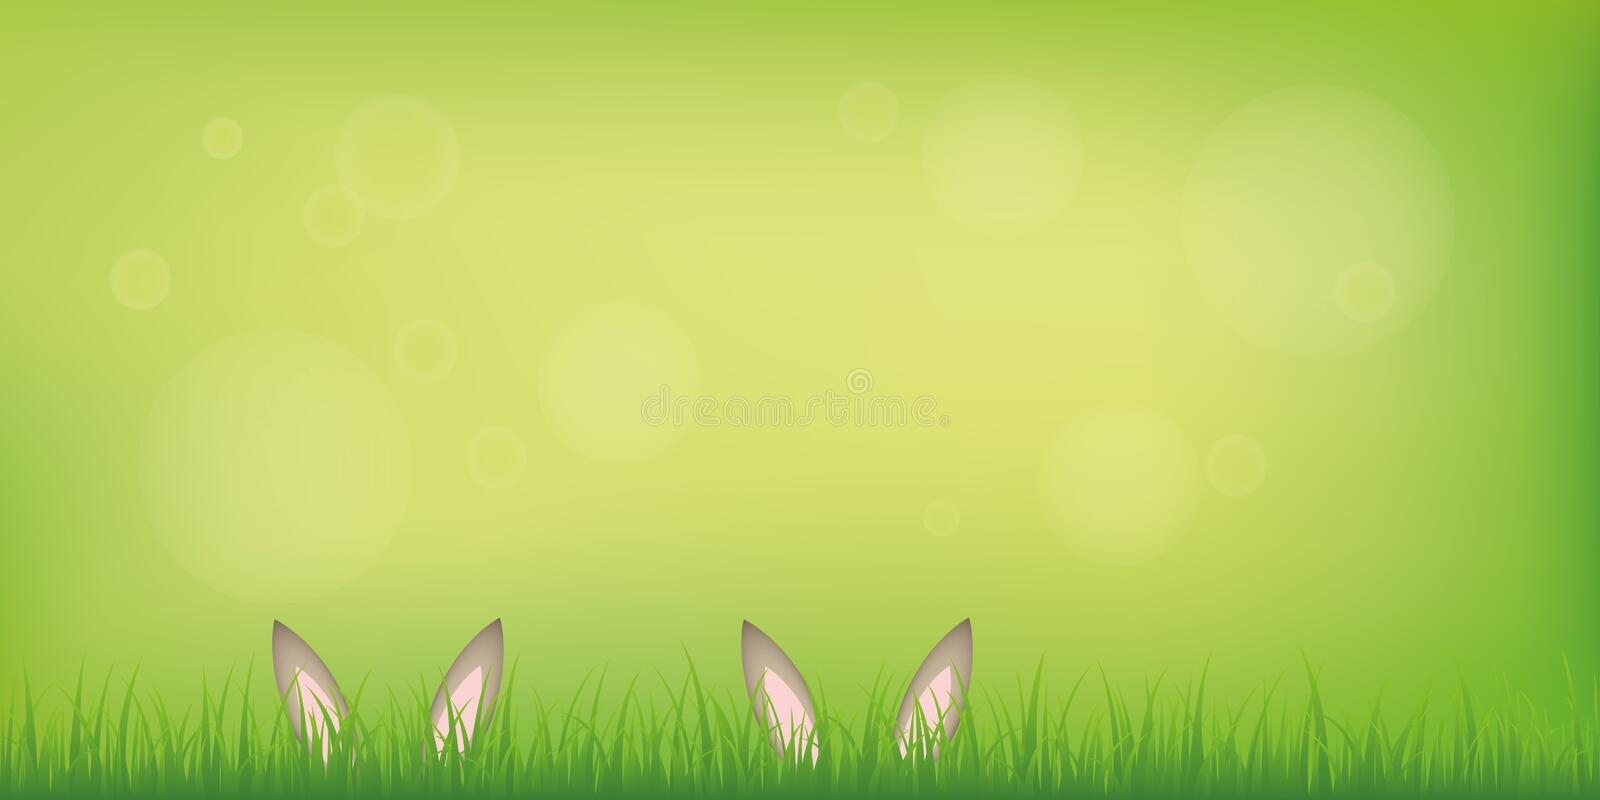 Couple hare bunny ears hide in the lawn on green spring background. Vector illustration EPS10 vector illustration